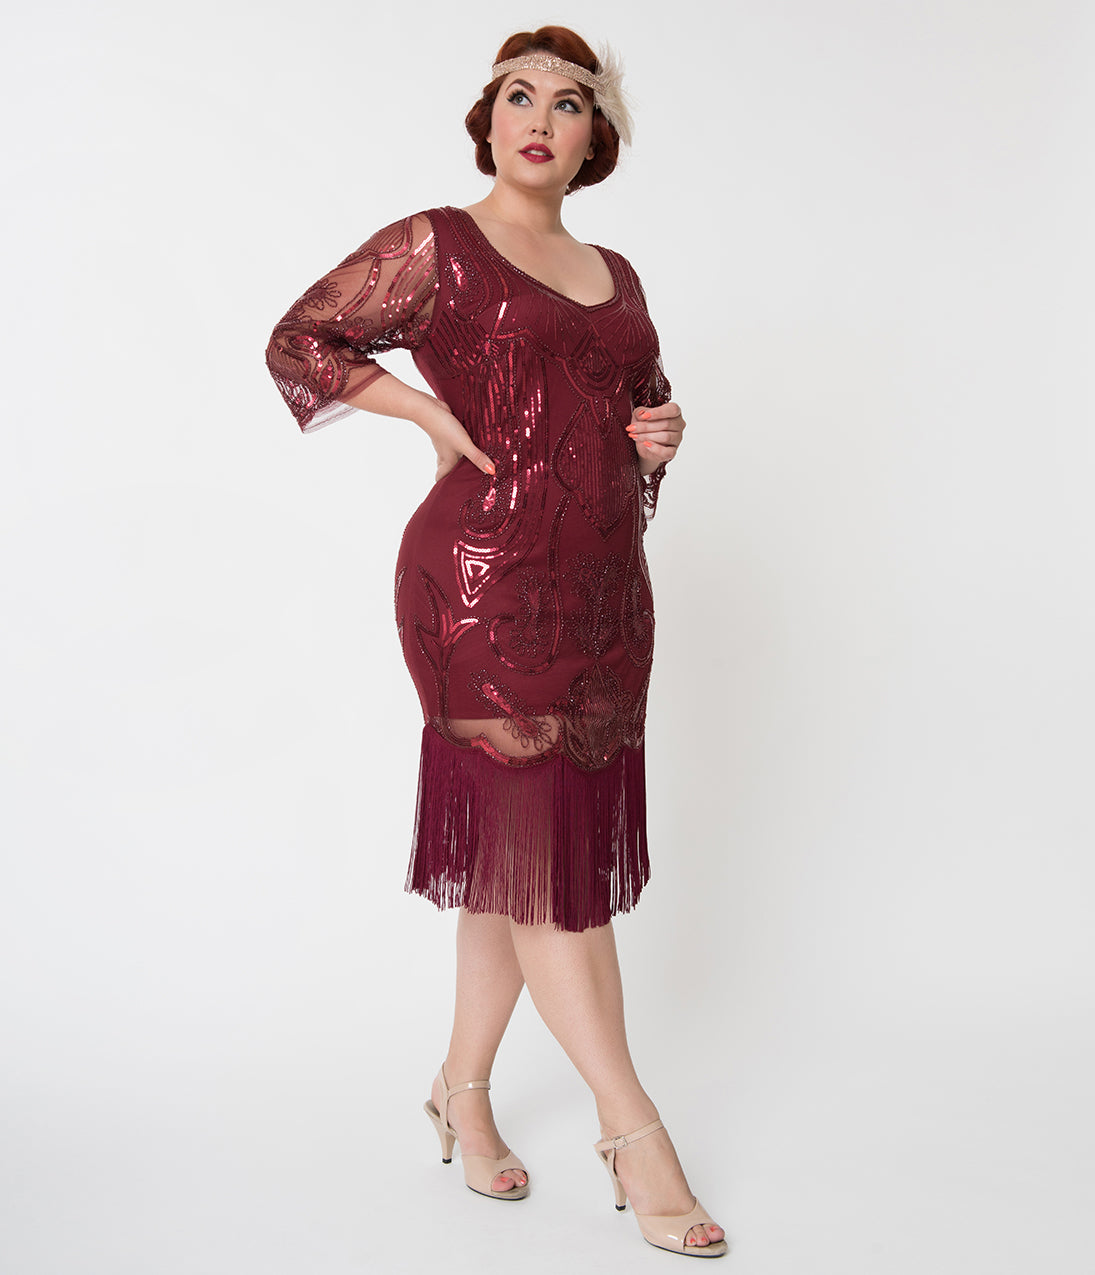 4780bfefc88 1920s Formal Dresses   Evening Gowns Guide Unique Vintage Plus Size  Burgundy Red Sequin Margaux Sleeved